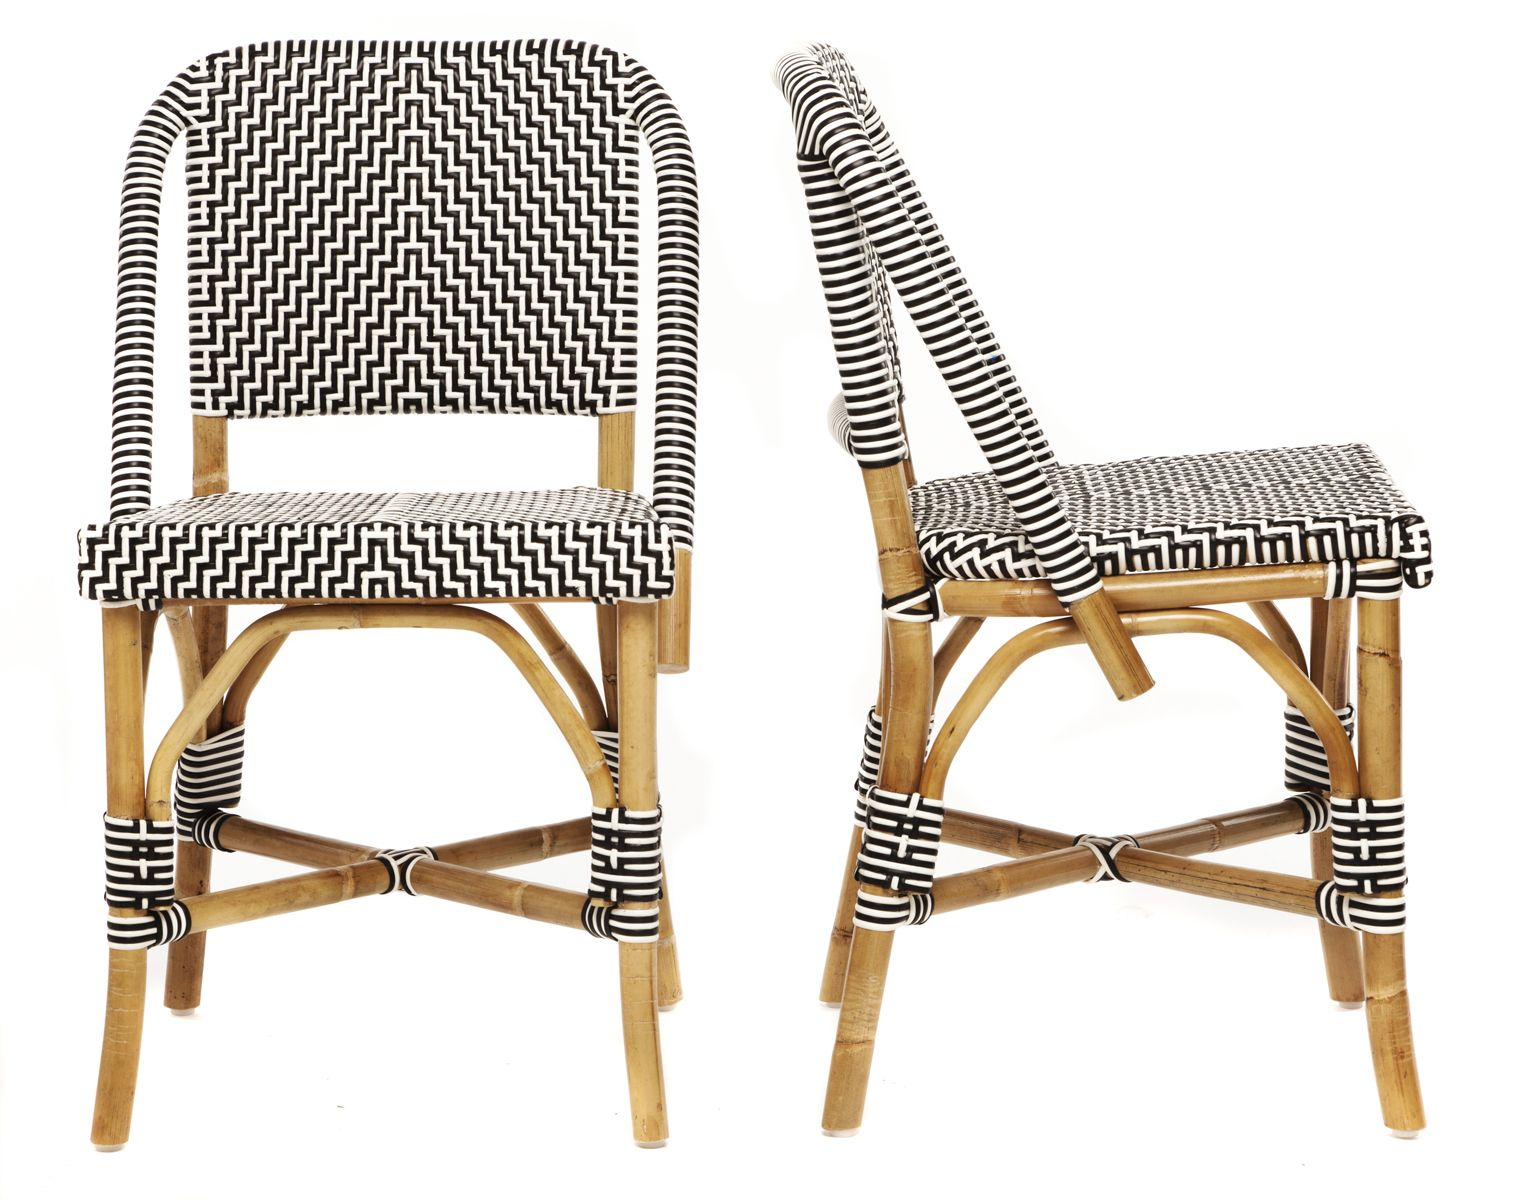 Bistro Lu0027afrique Black And White Pattern Bistro Chairs A Modern Approach  With A French Flair For Dining Can Be Used Outdoors